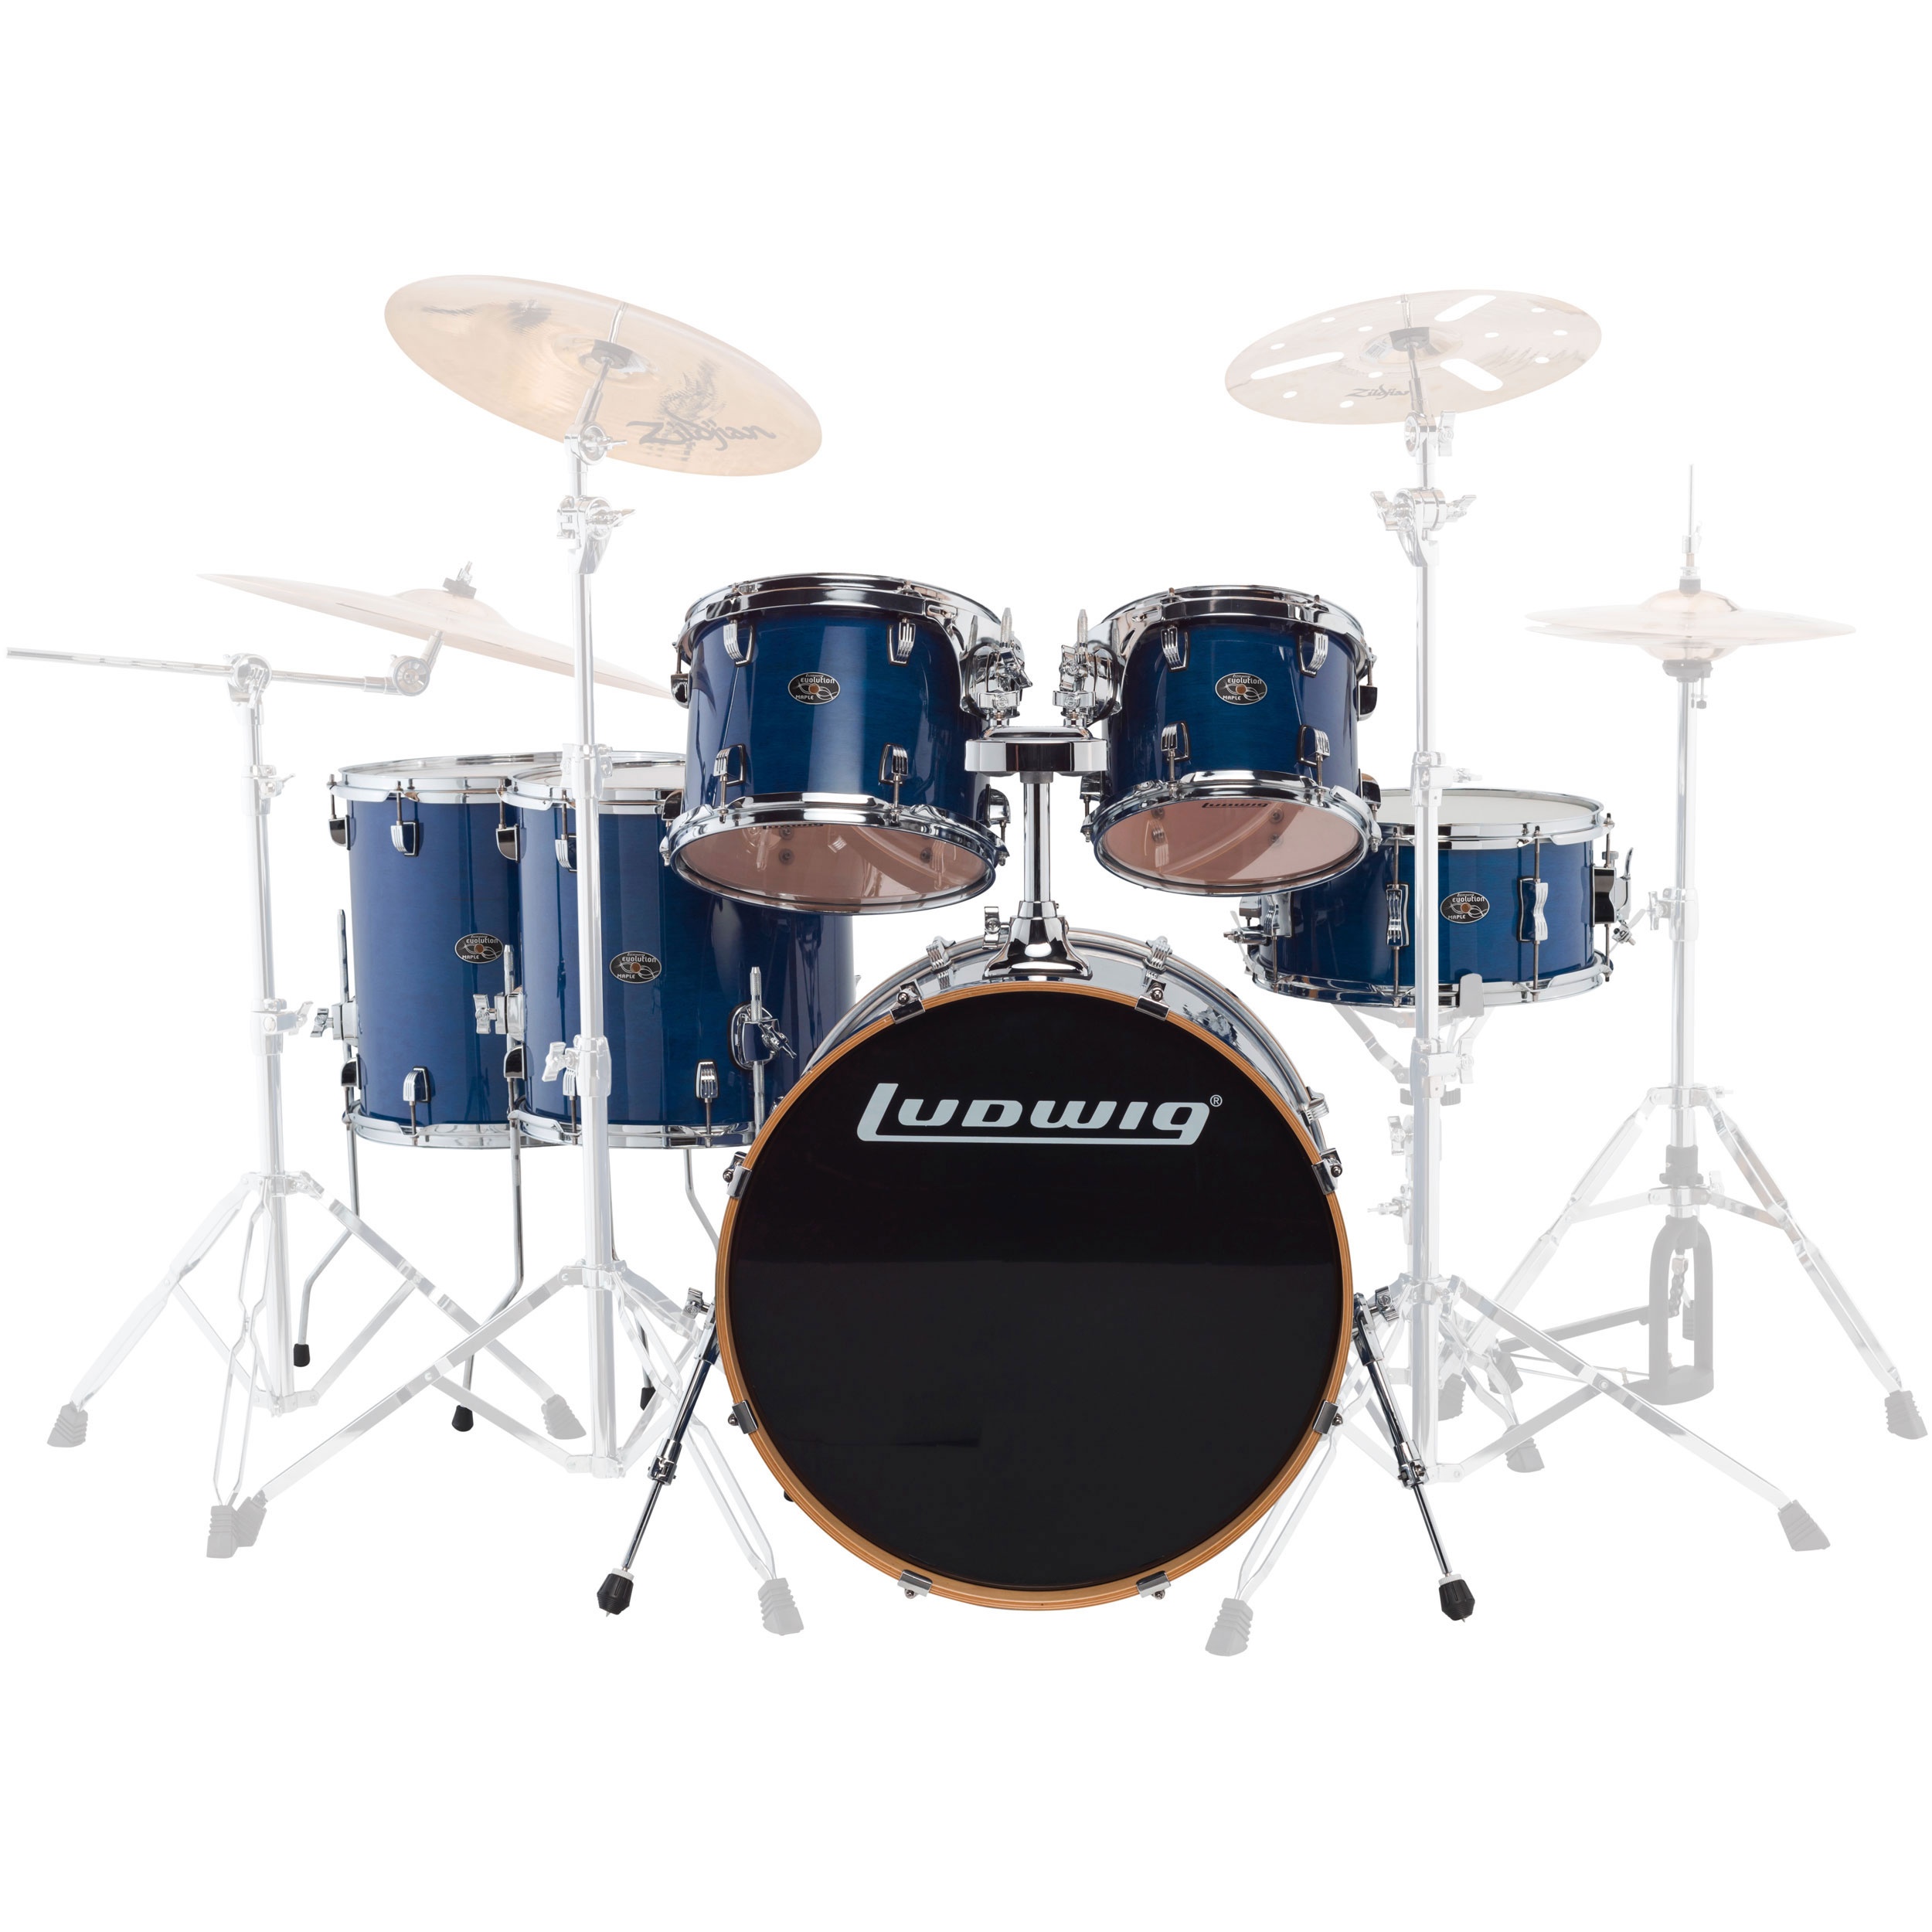 "Ludwig Evolution Maple 6-Piece Drum Set Shell Pack (22"" Bass, 10/12/14/16"" Toms, 14"" Snare)"